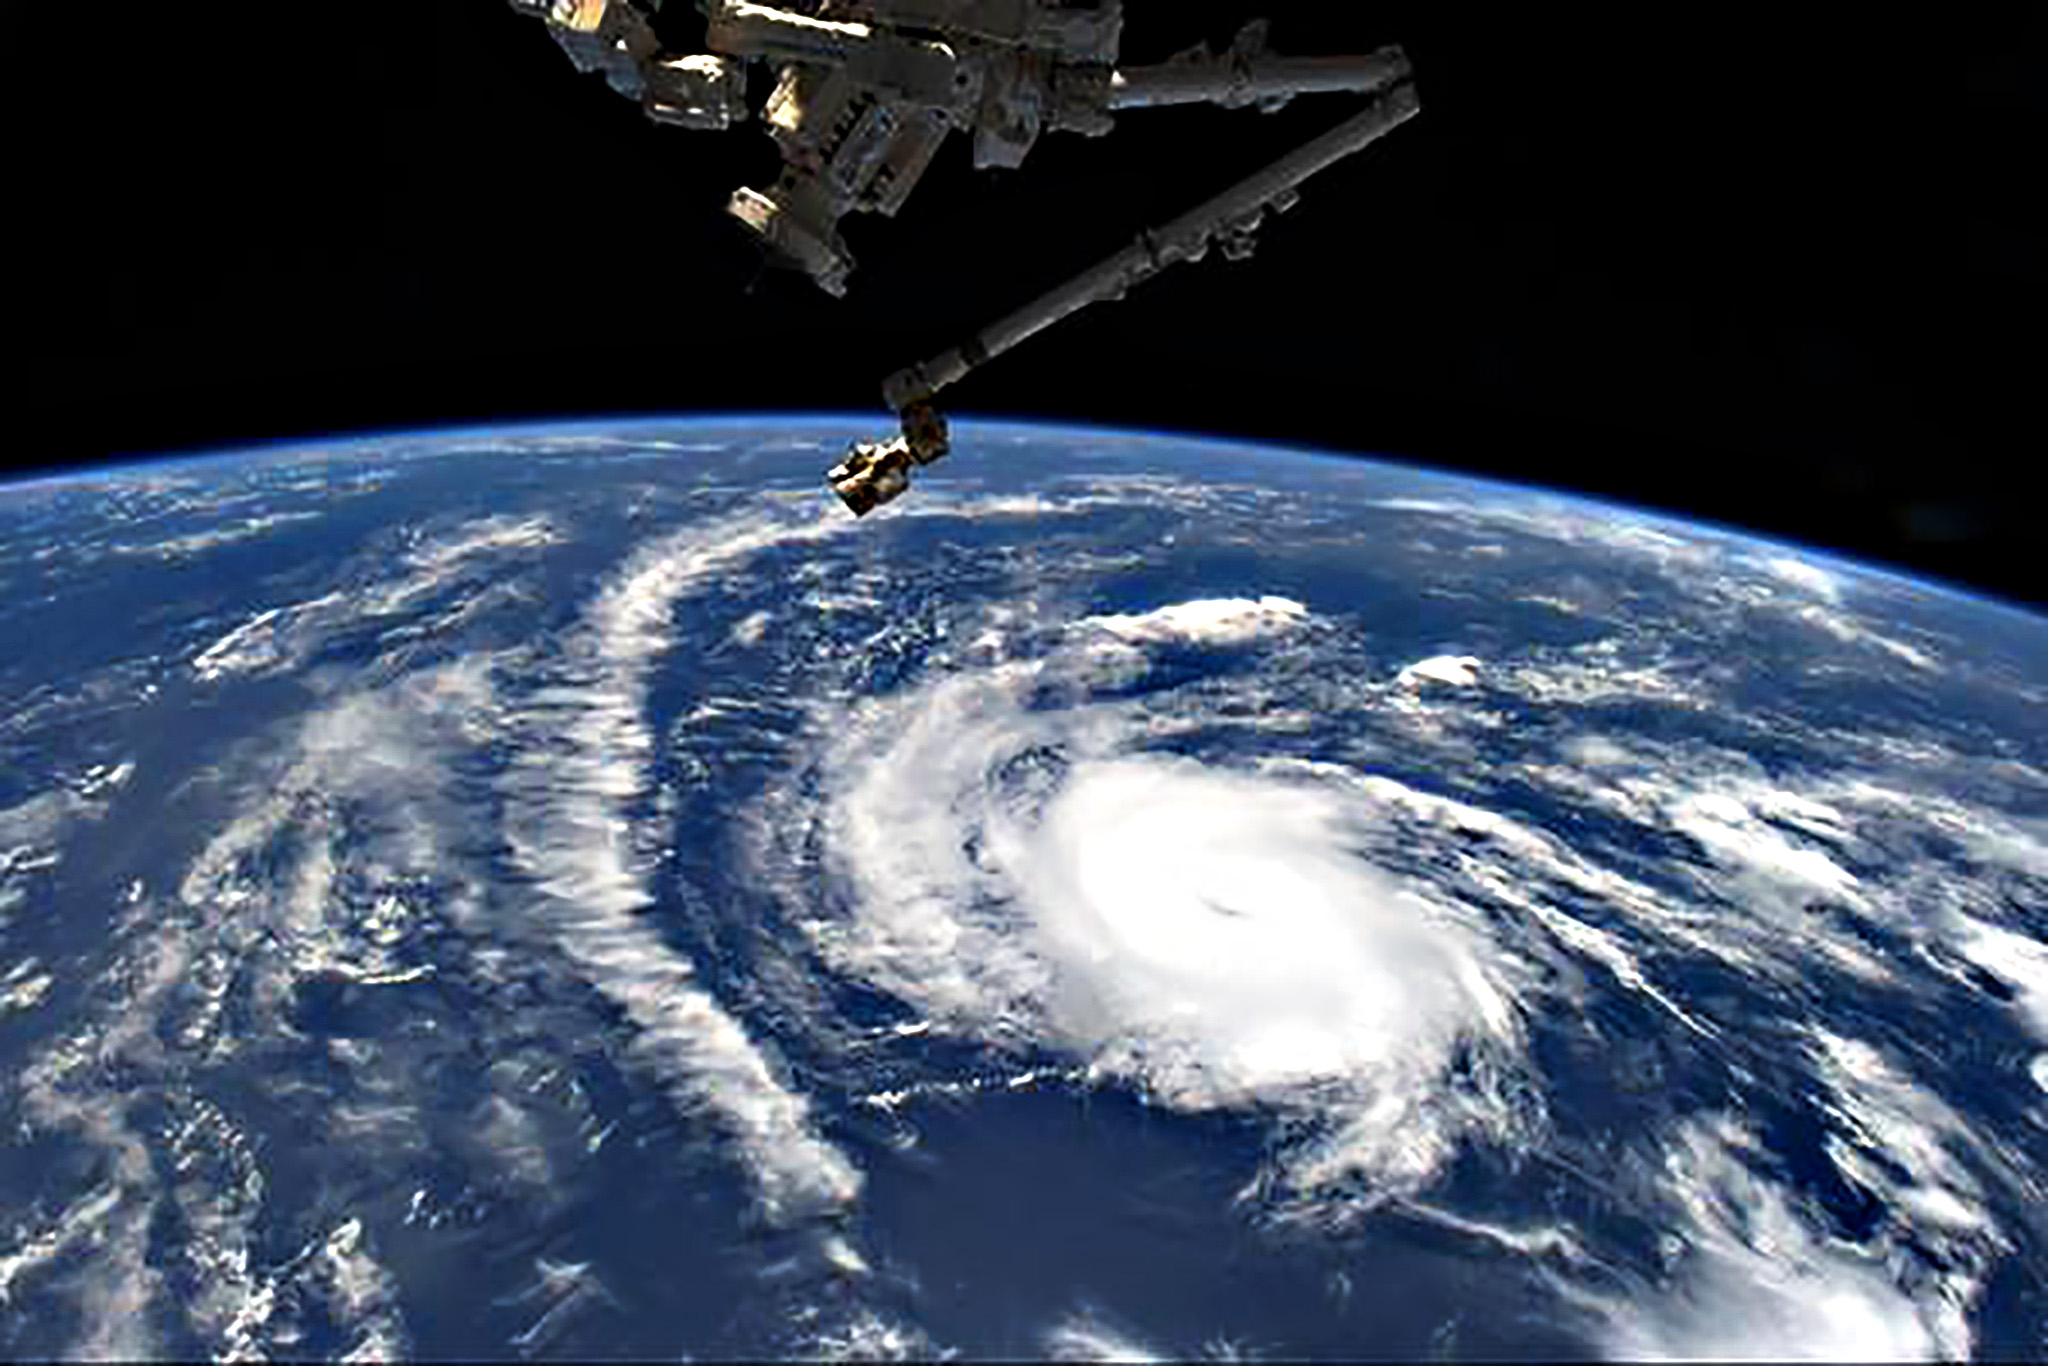 Hurricane Danny, the first hurricane of the 2015 Atlantic season, is seen in this picture by NASA astronaut Scott Kelly taken from the International Space Station August 20, 2015.